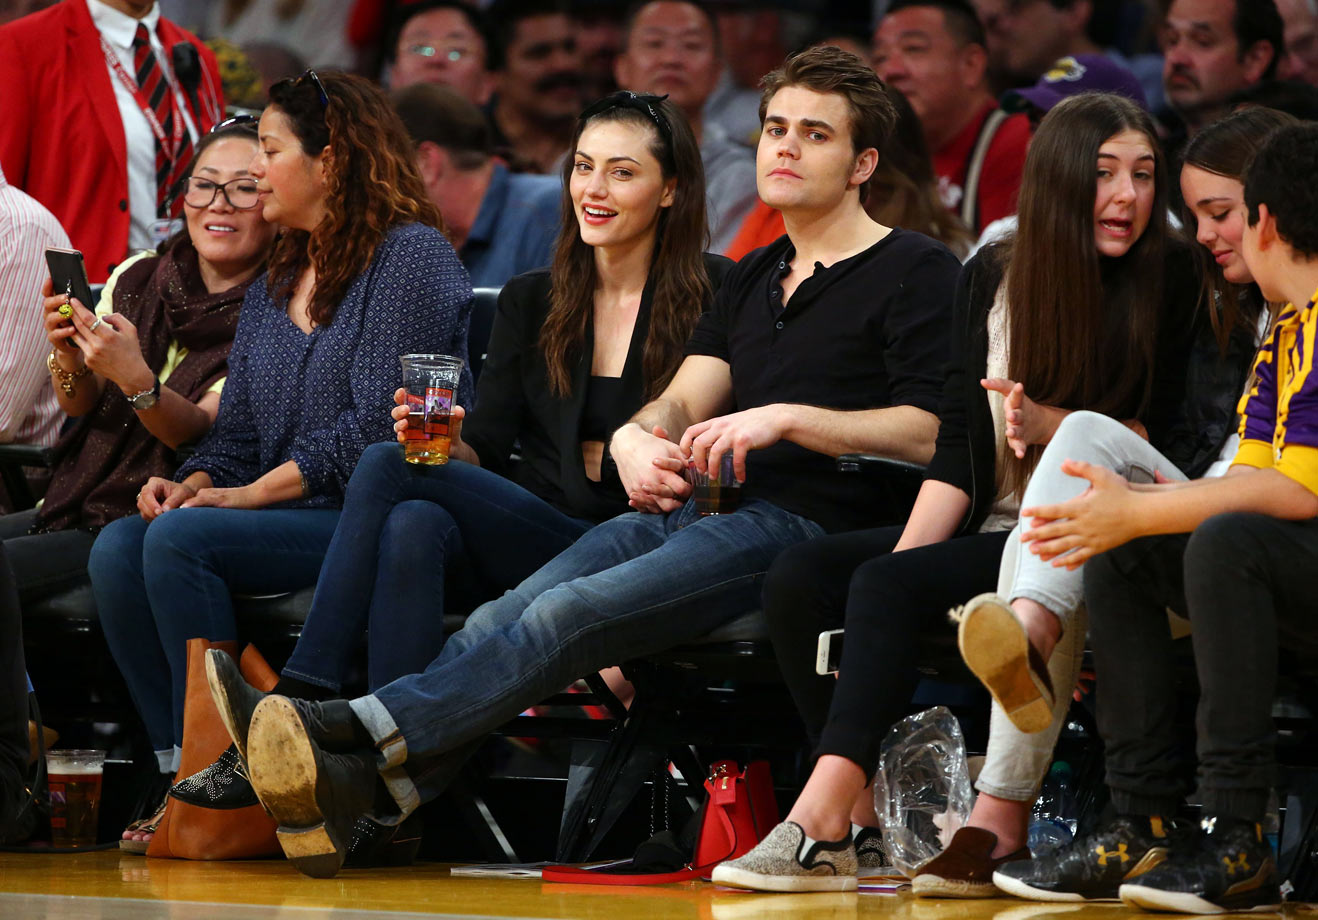 March 15, 2015: Los Angeles Lakers vs. Atlanta Hawks at Staples Center in Los Angeles